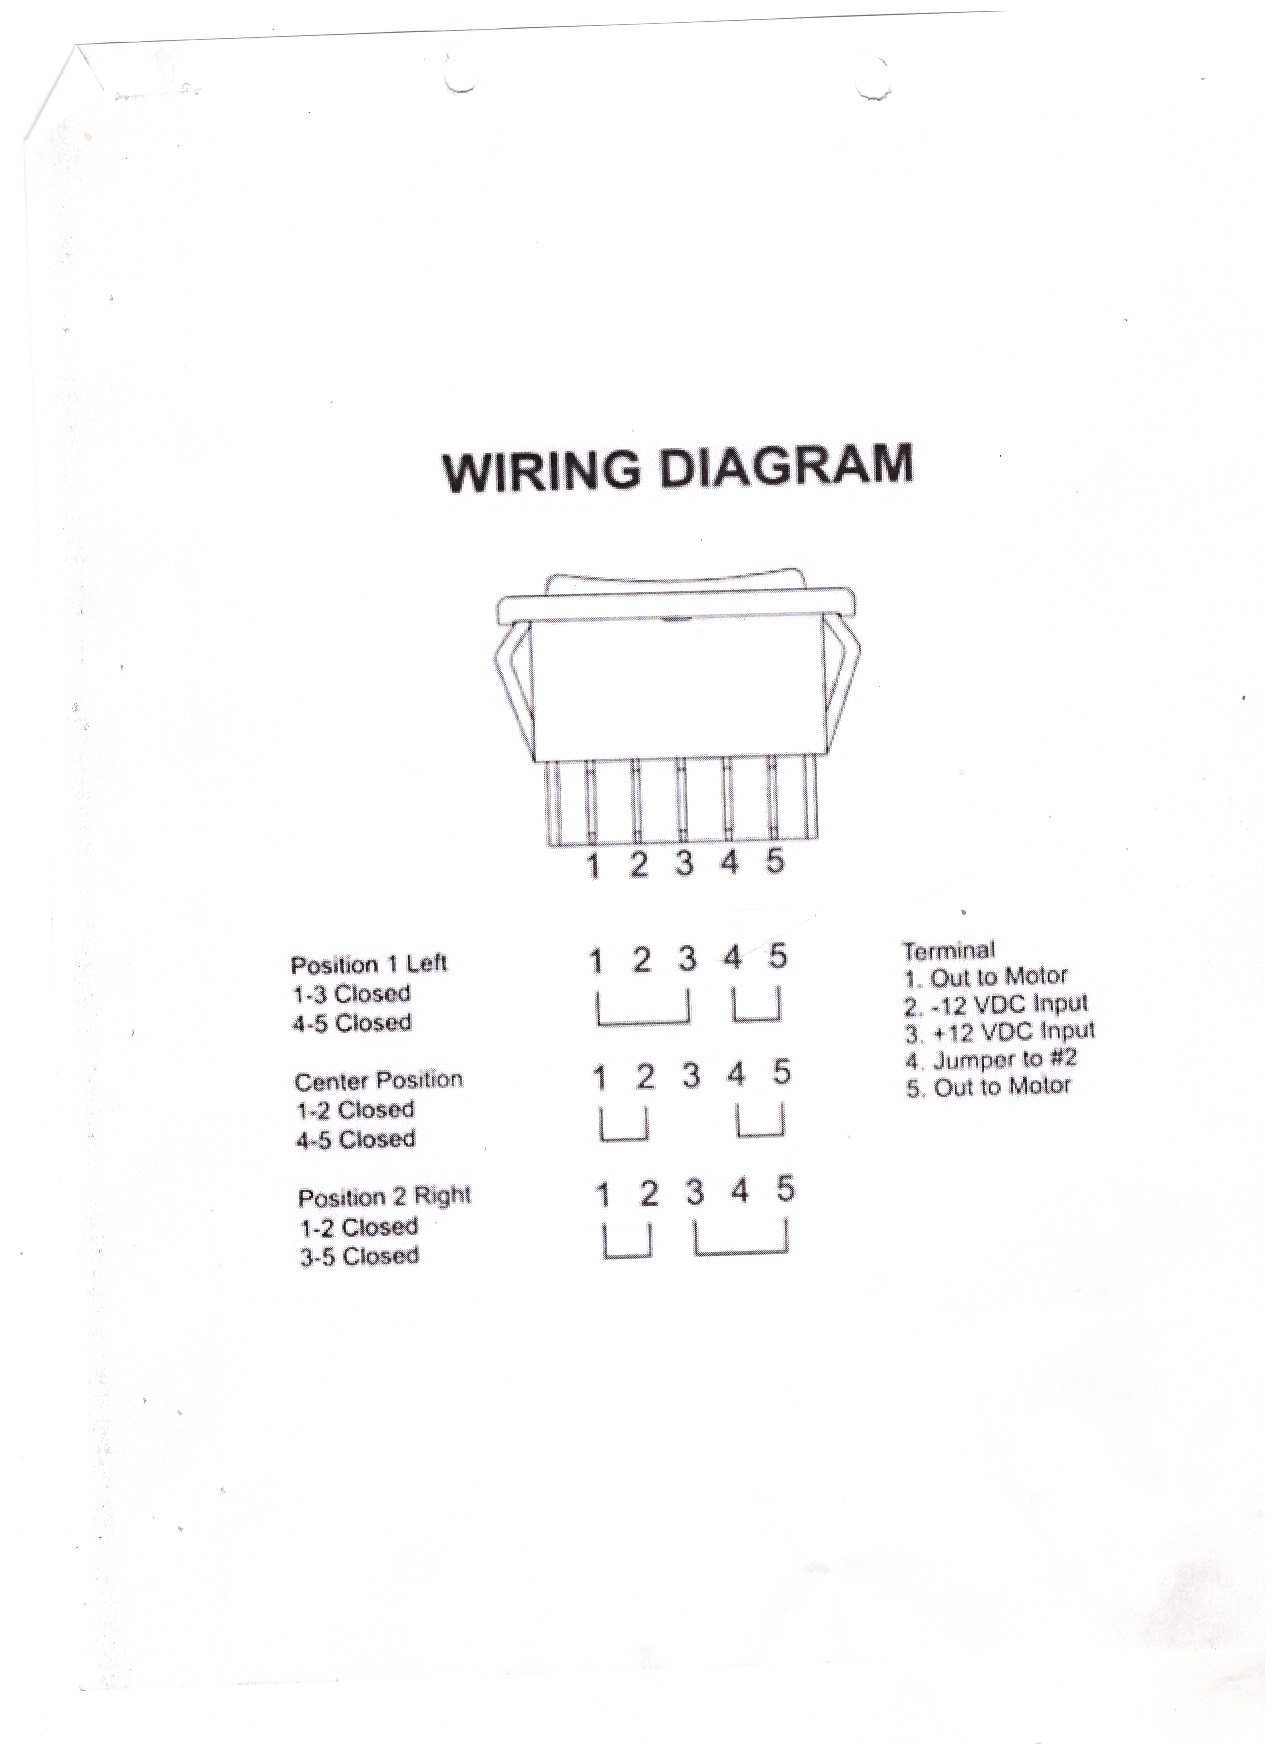 6 pin switch wiring diagram 6 discover your wiring diagram power window relay setup electronics forum circuits projects 6 pin shovelhead ignition switch wire diagram wiring